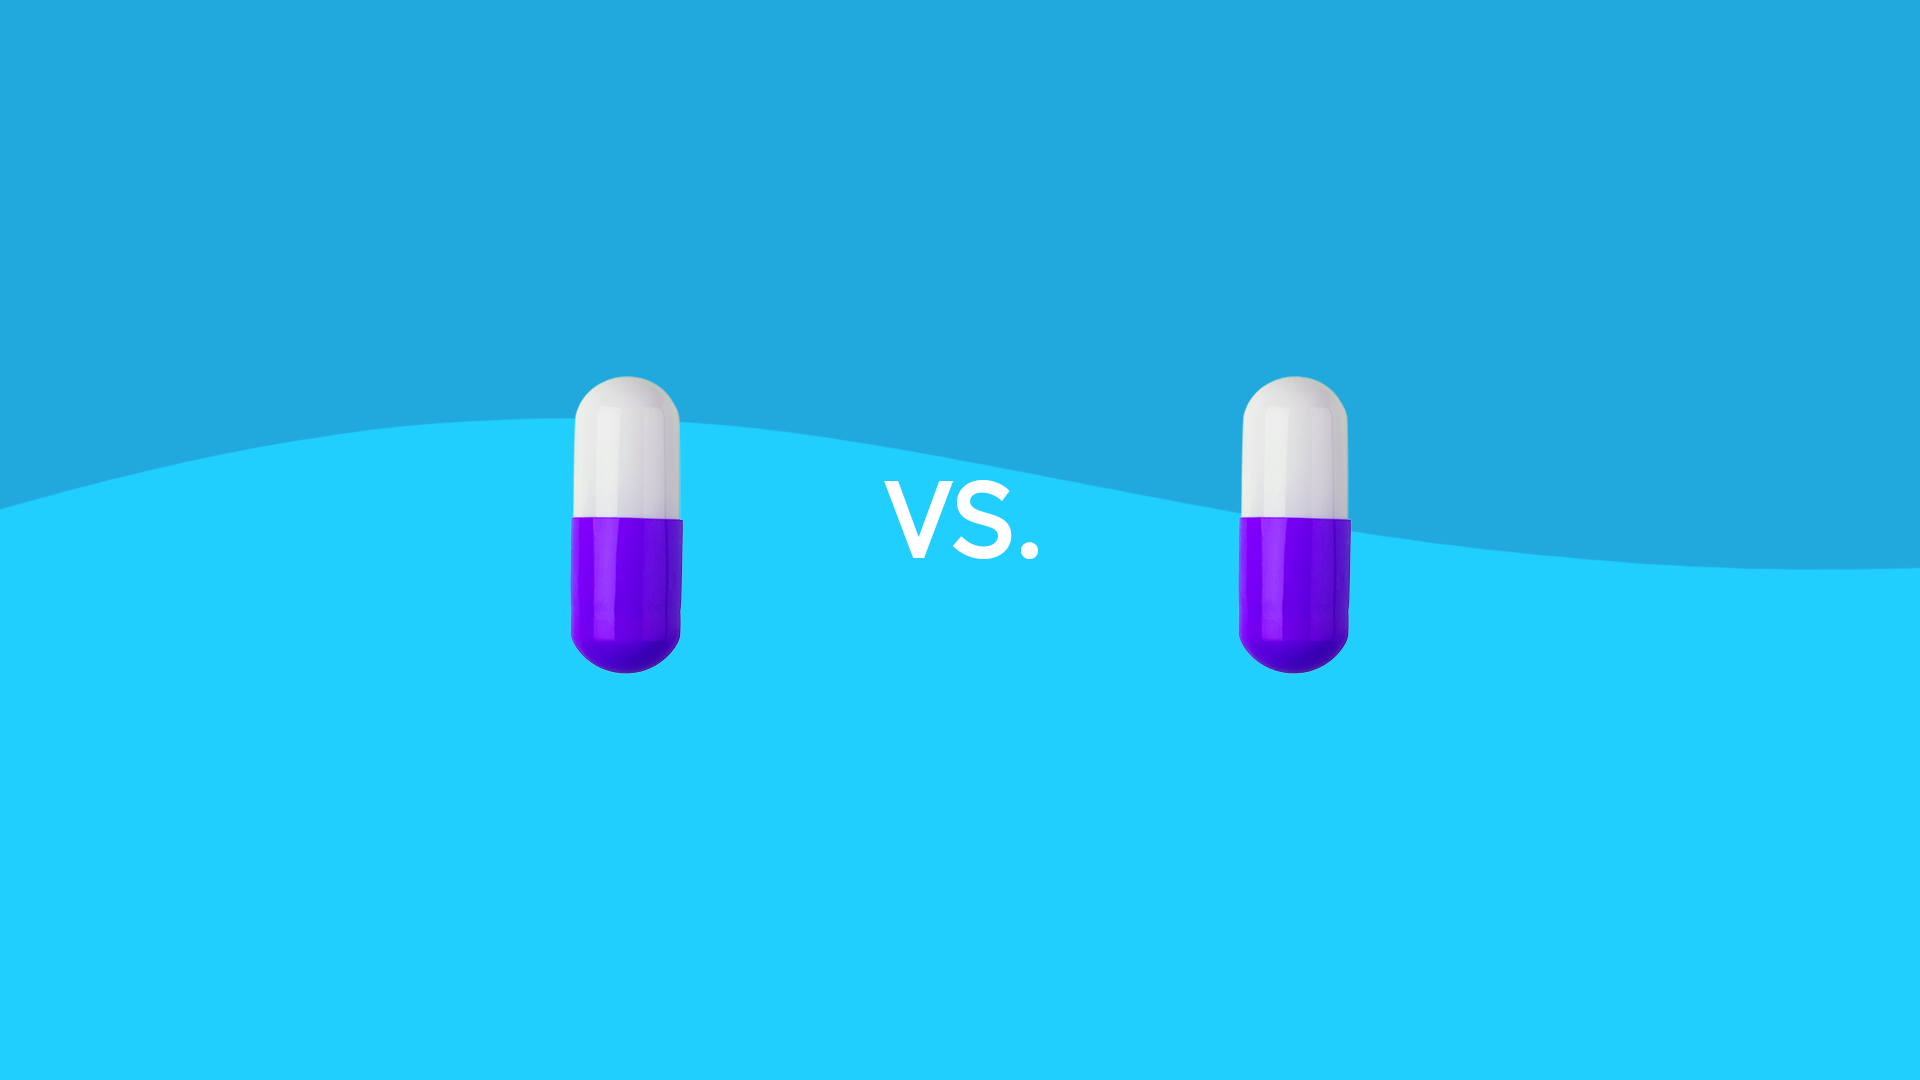 Minocycline vs doxycycline: Differences, similarities, and which is better for you